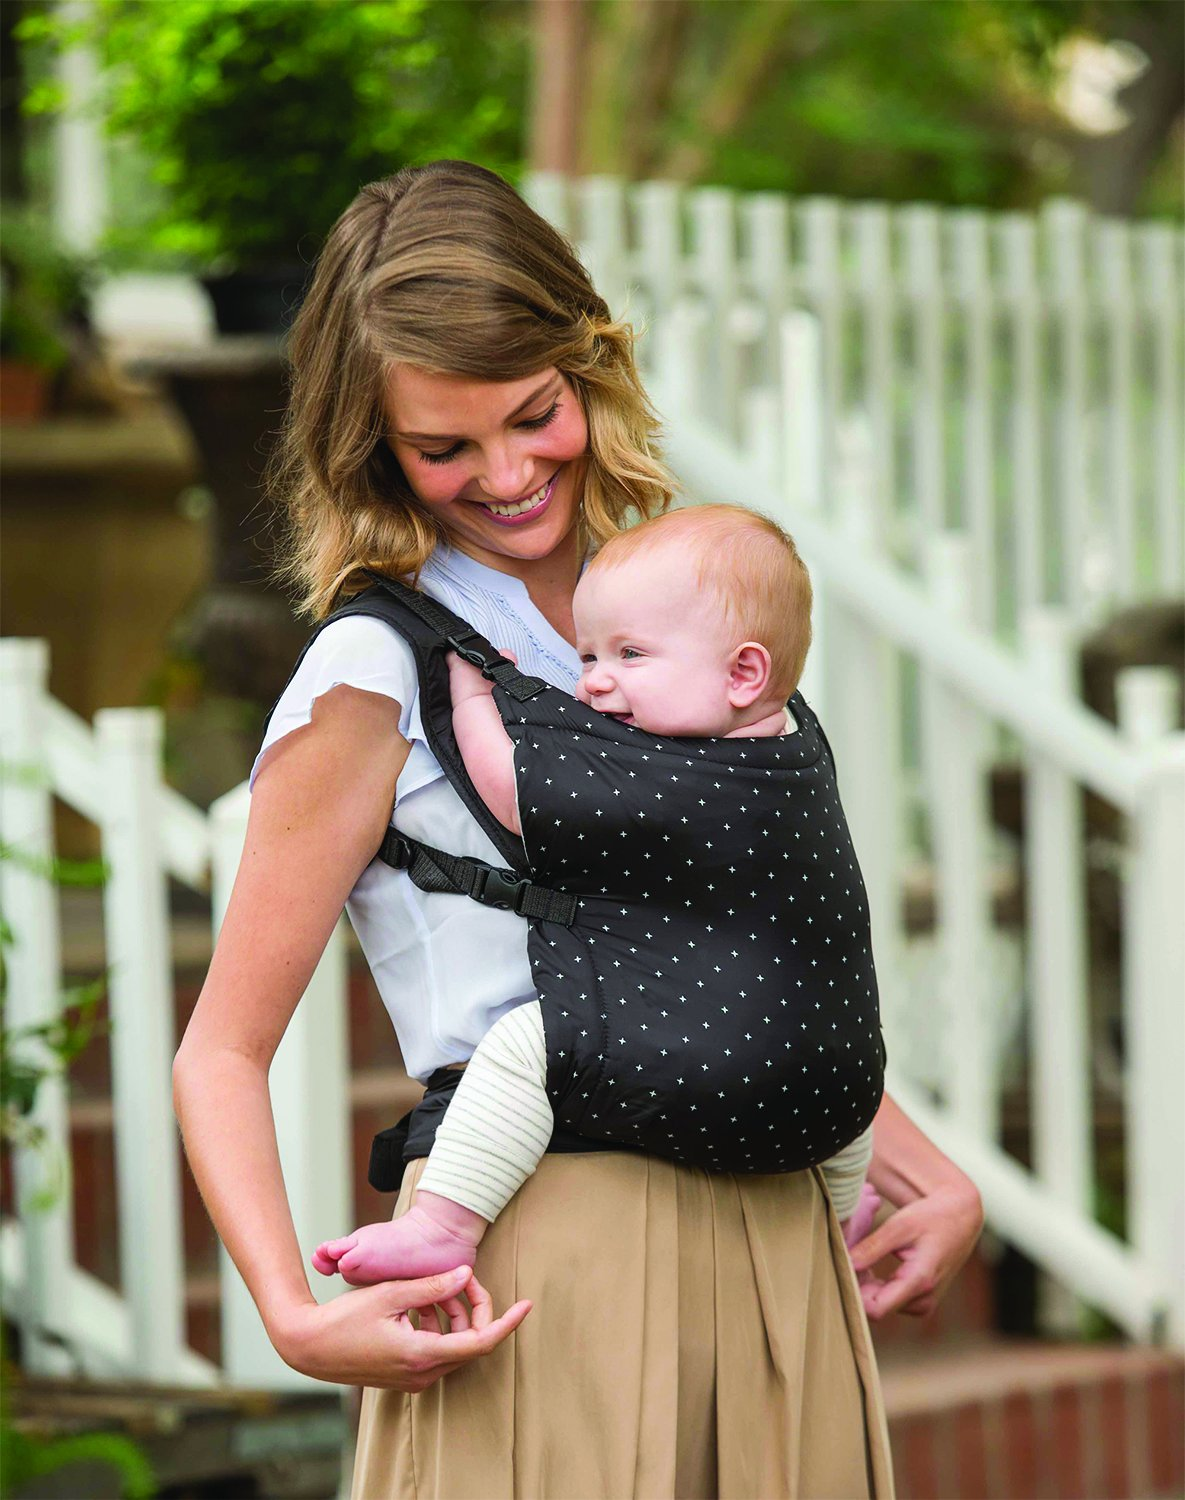 Infantino Zip Ergonomic Baby Travel Carrier, Black Infantino Fully safety tested Travel carrier that unfolds to for safe secure baby wearing Up to 18 kg 4